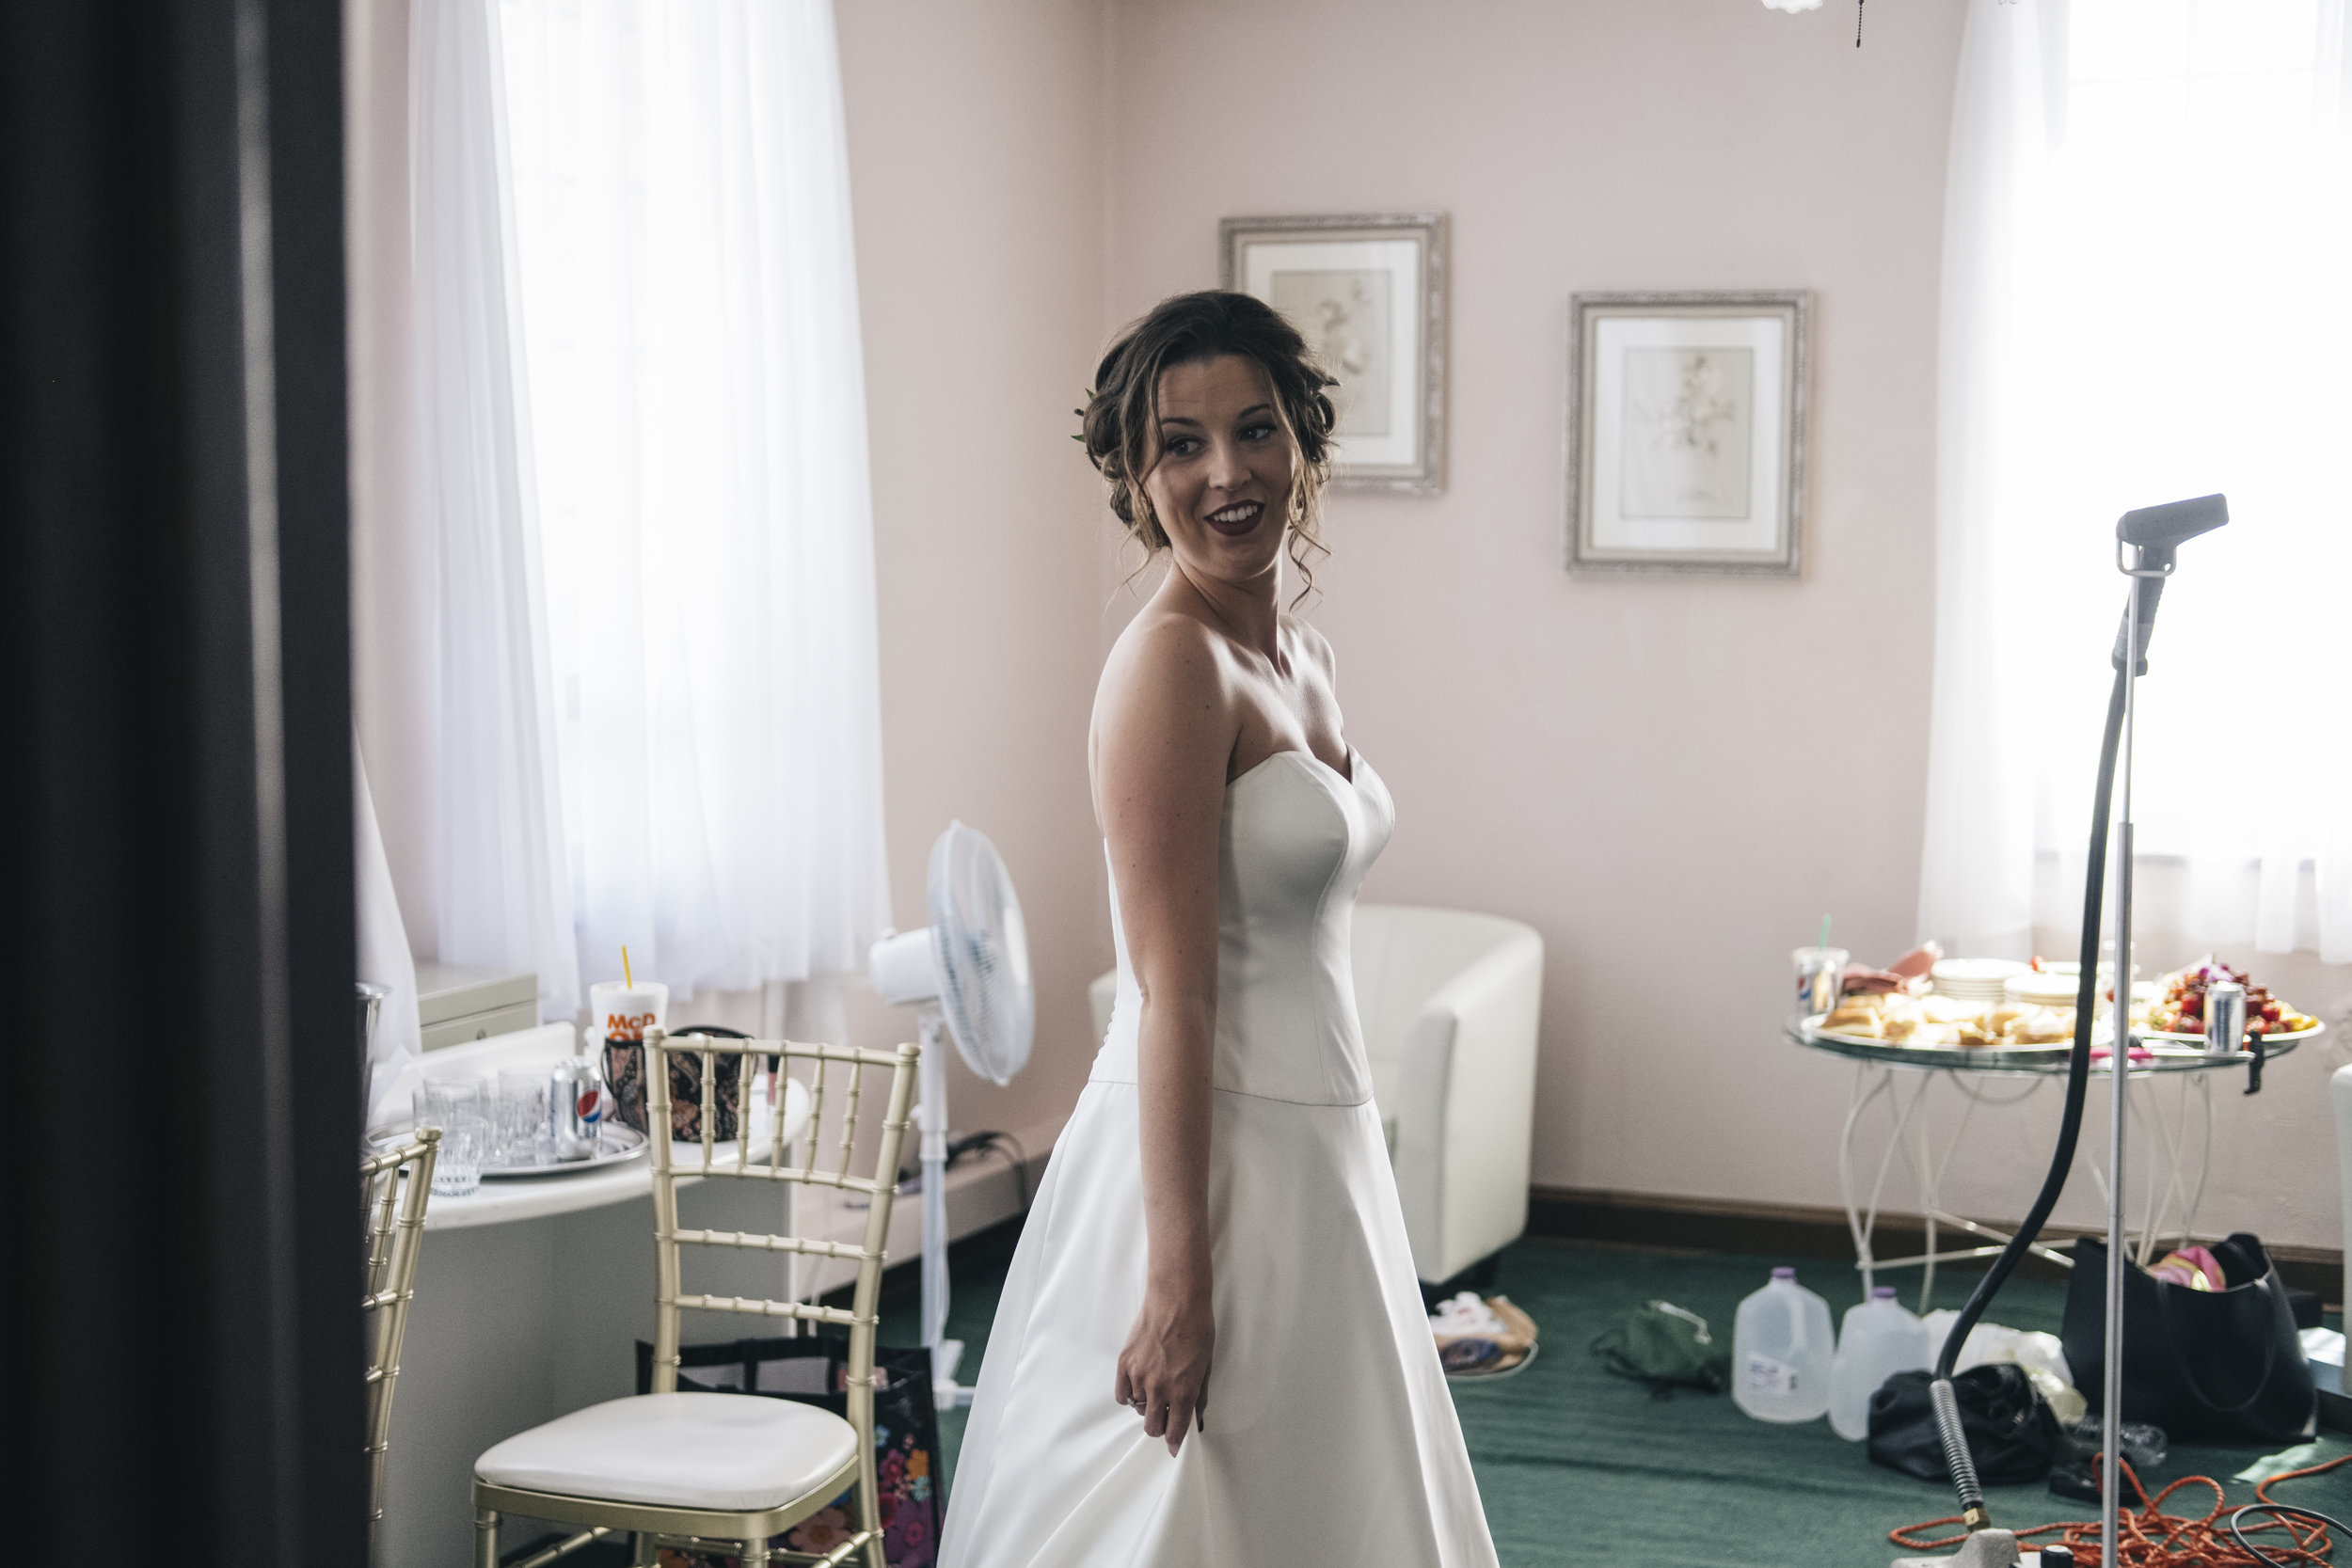 Bride Gets Ready for Ceremony in Toledo Ohio with Wedding Photographers